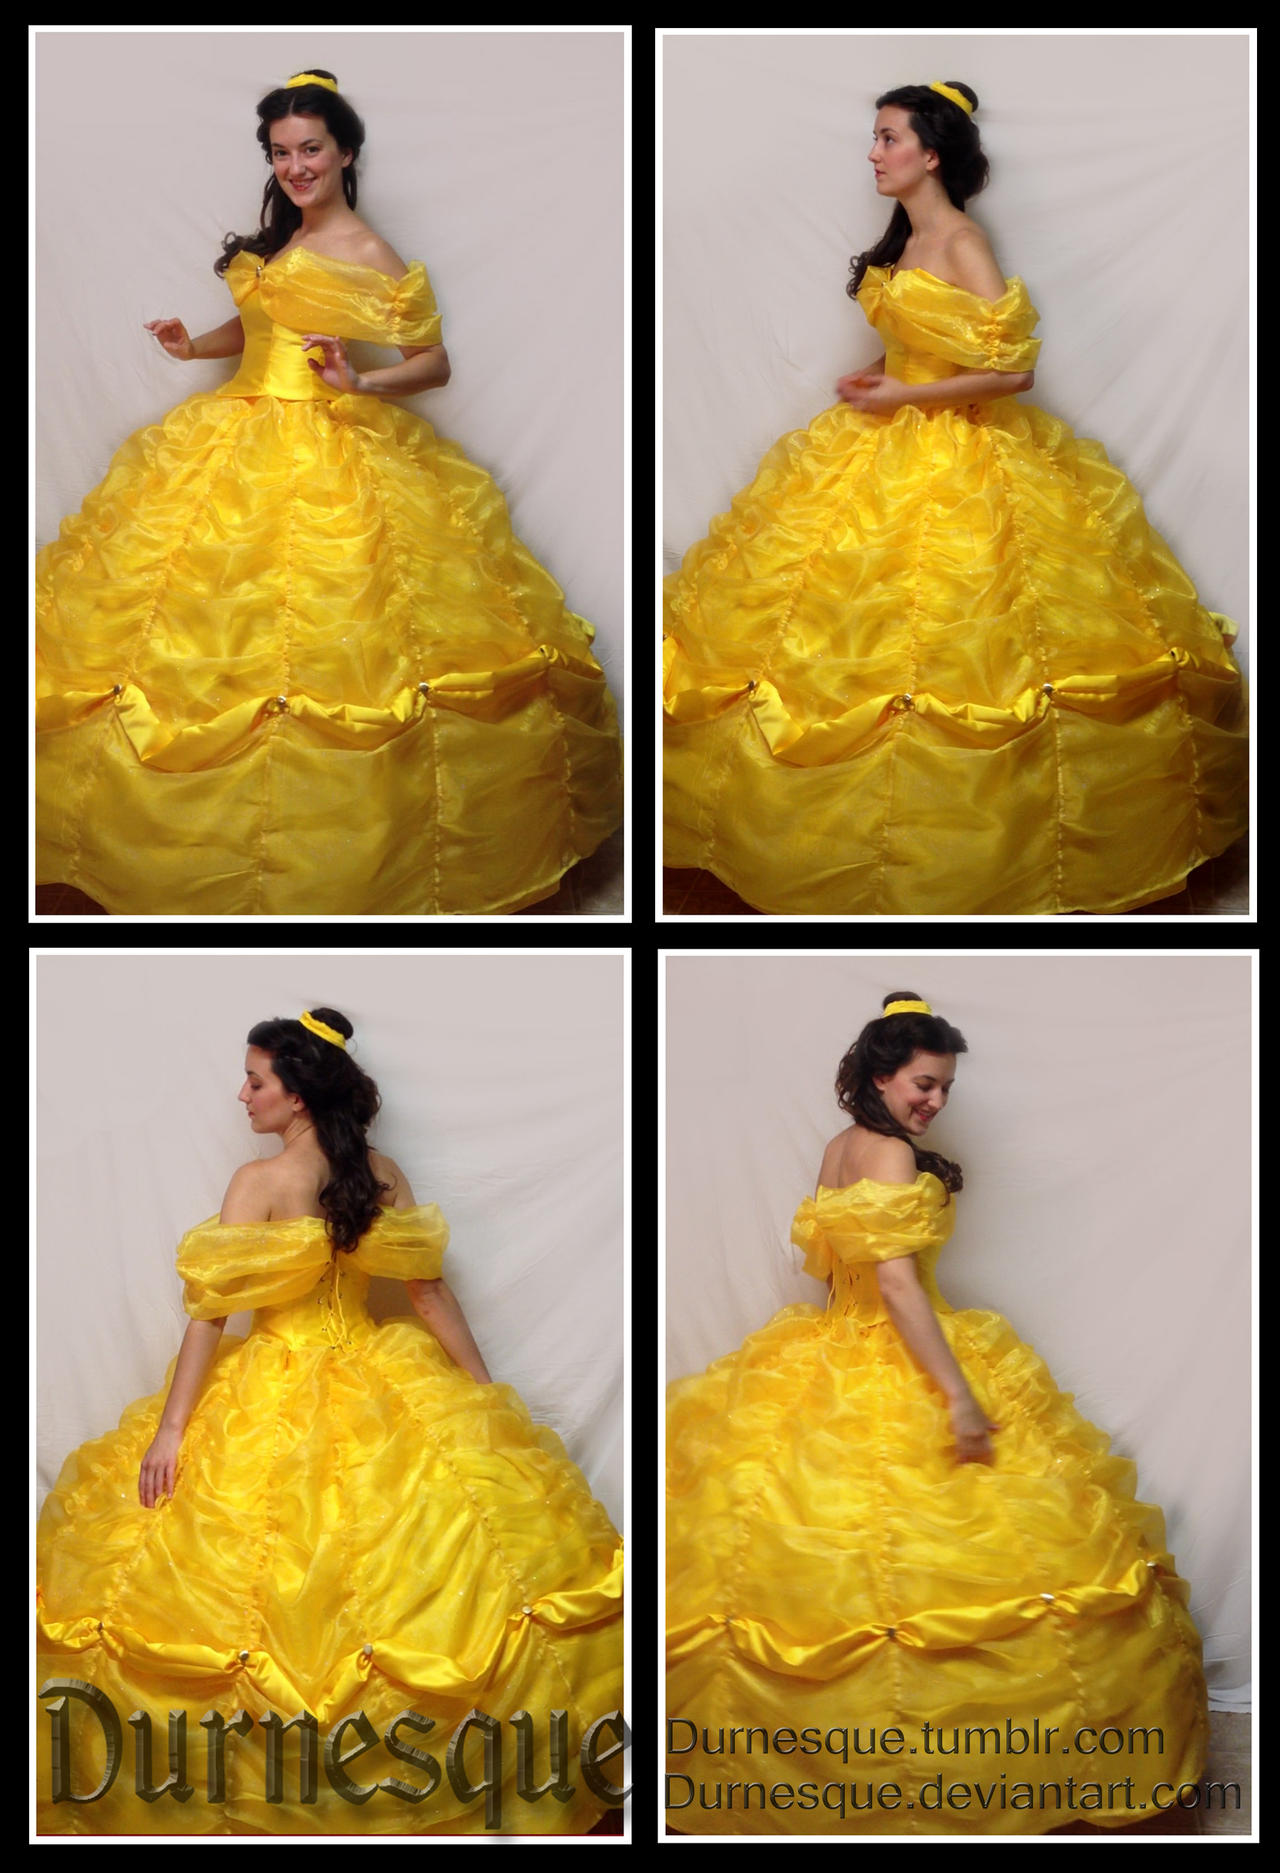 Belle's Ball Gown (4 views) by Durnesque